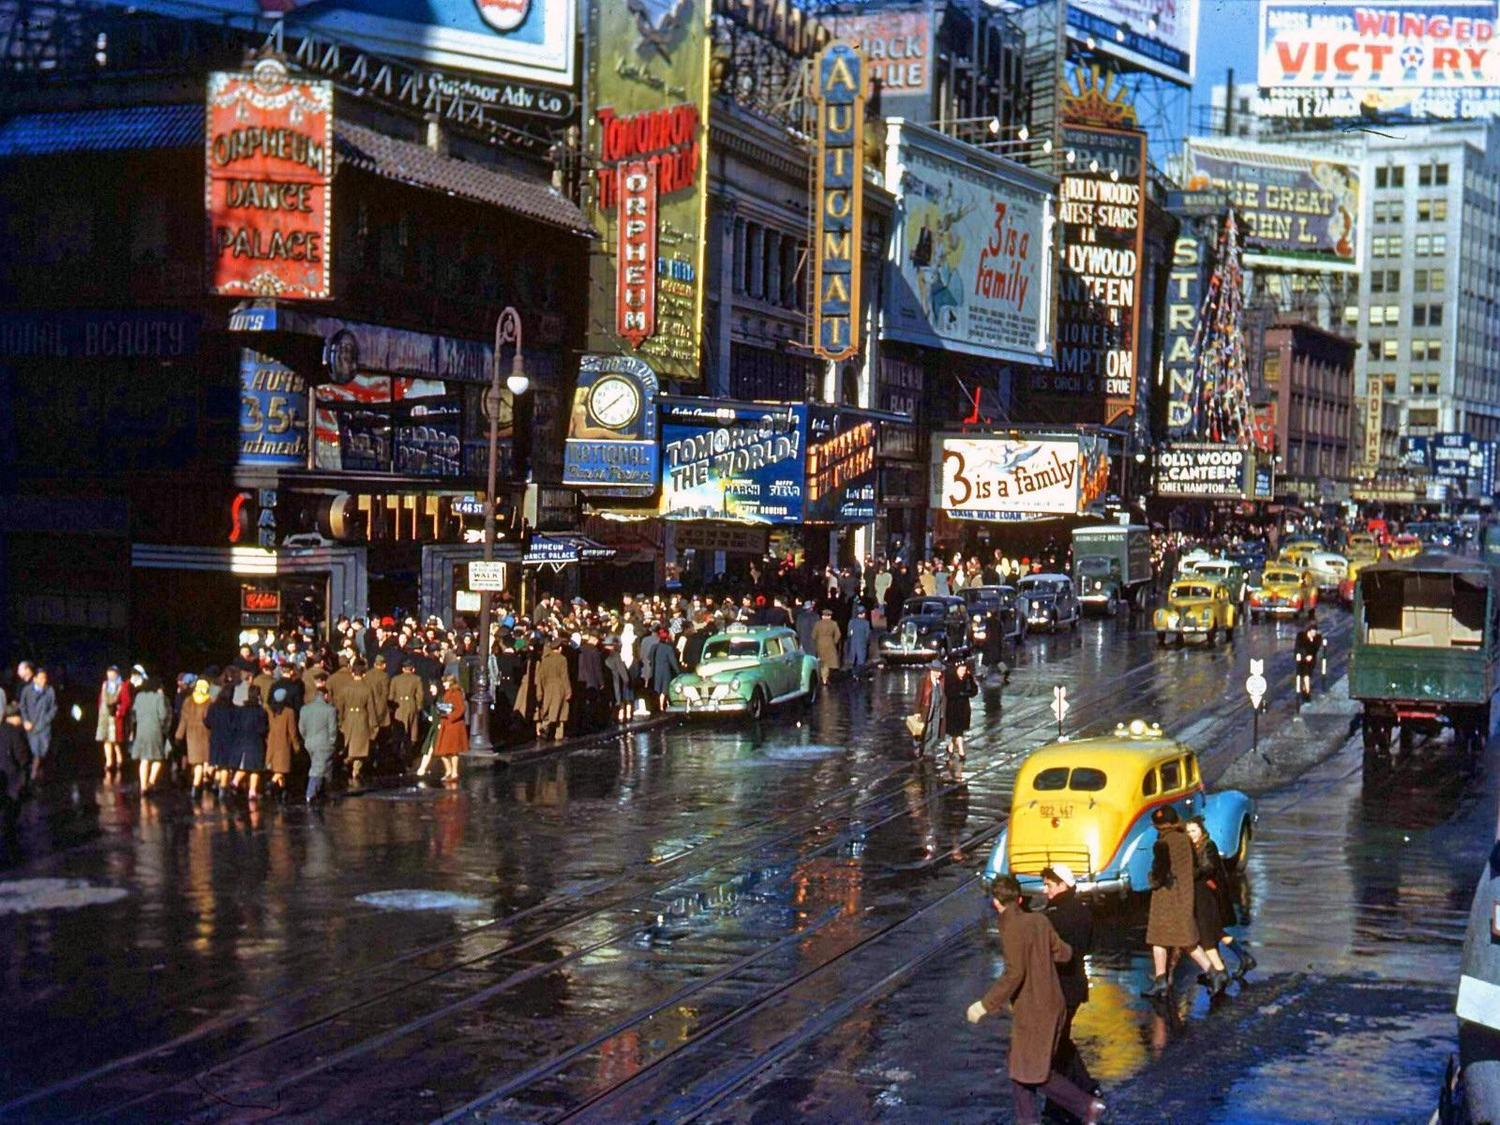 Looking north from 46th and Broadway, Times Square, New York City ca. 1943